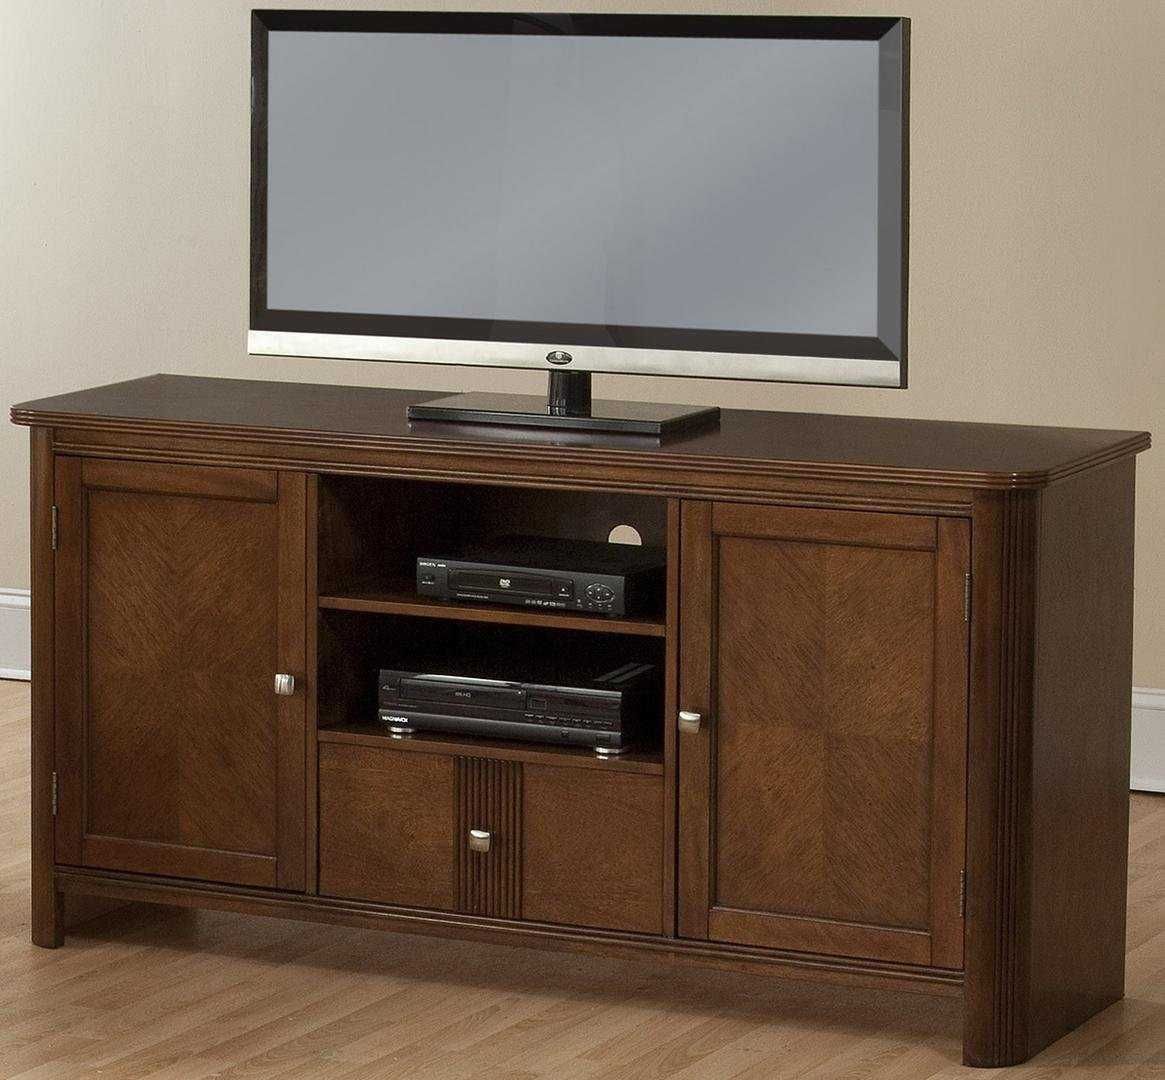 New Classic Leila Entertainment African Chestnut Console by New Classic Furniture